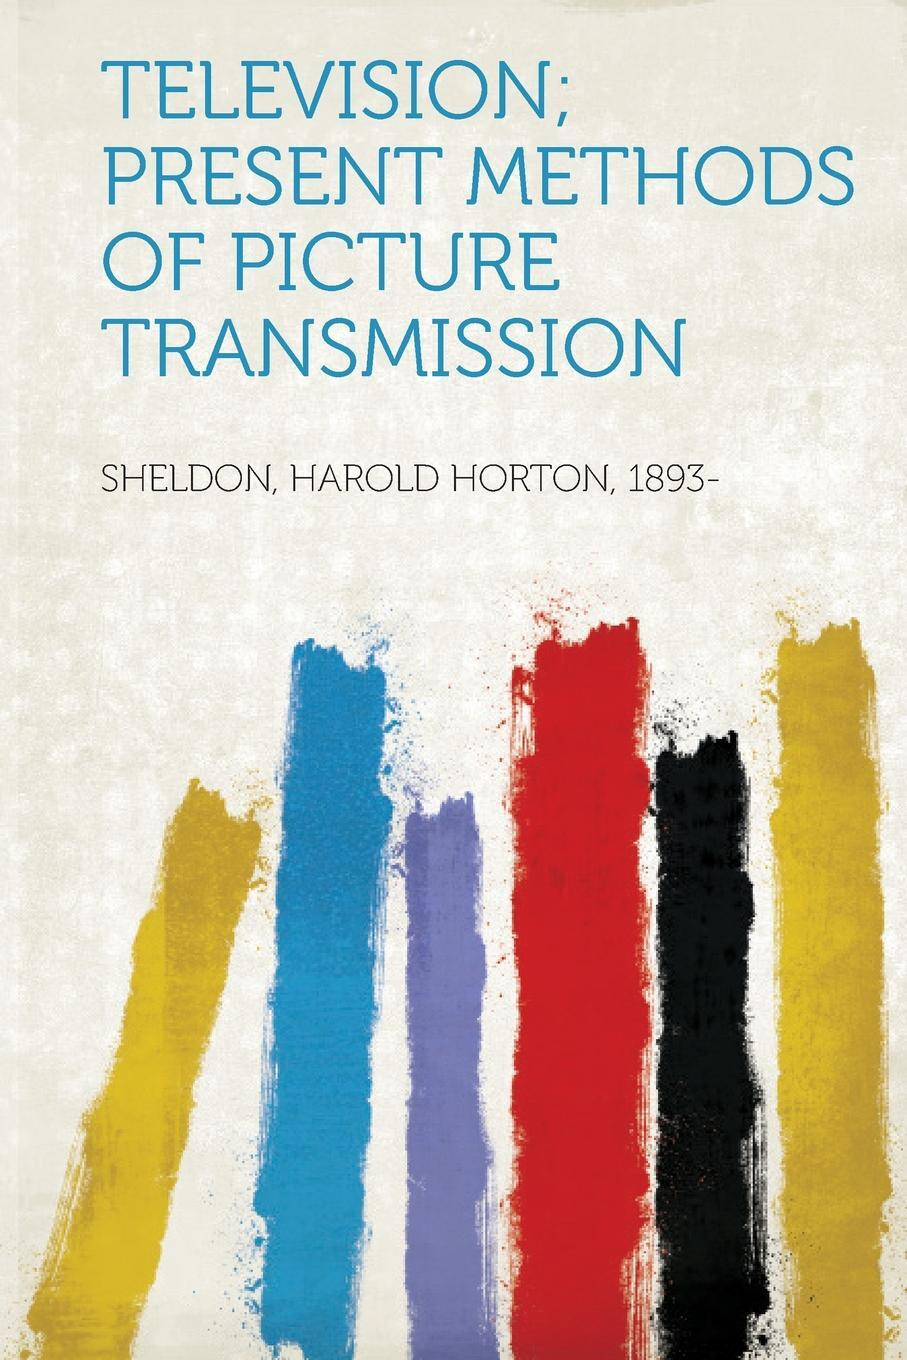 Television; Present Methods of Picture Transmission